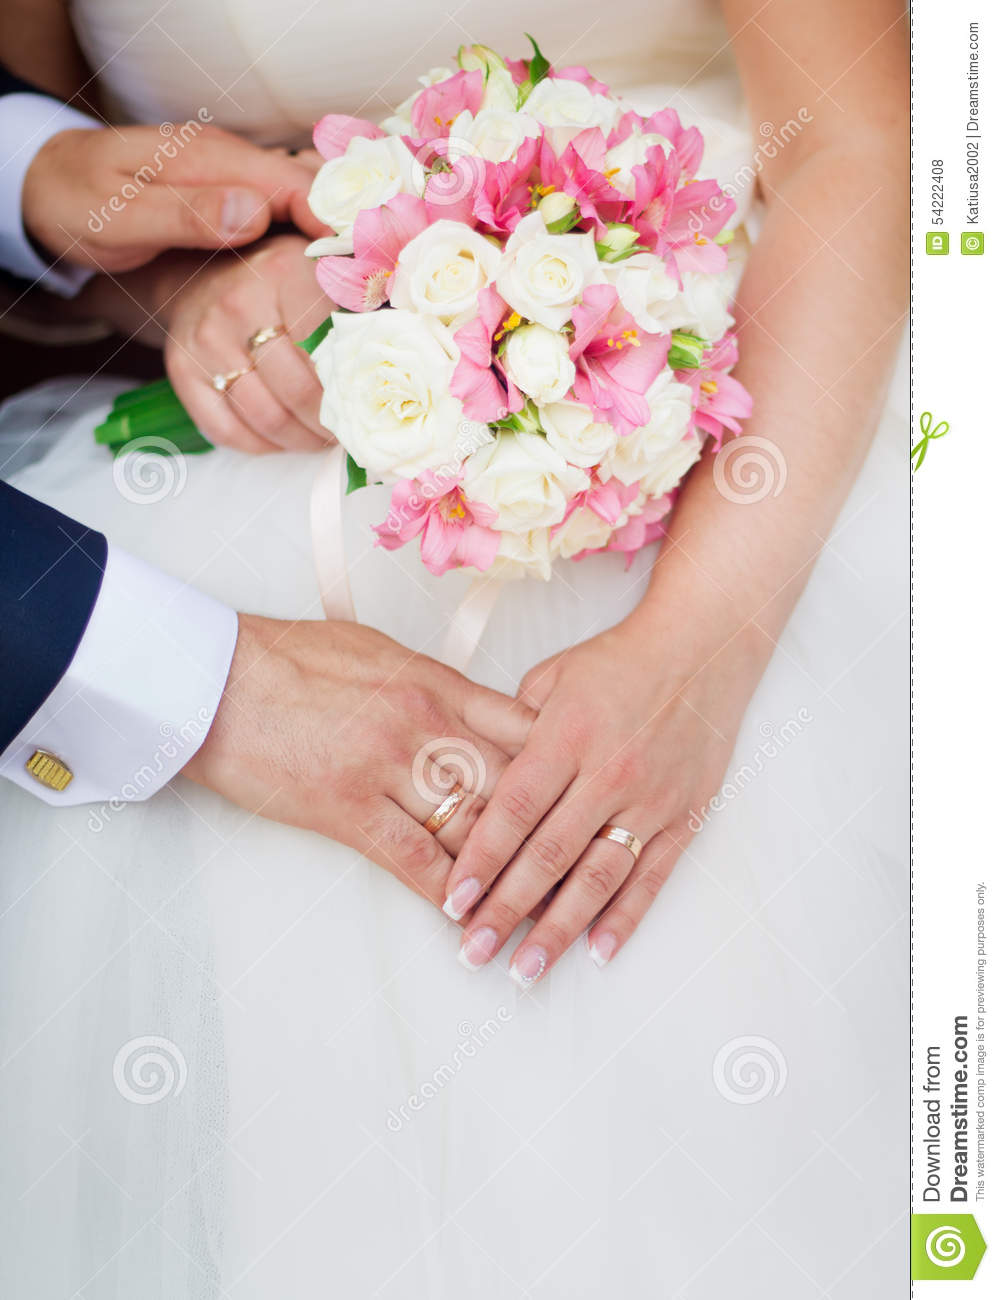 Wedding couple holding hands with a bouquet of flowers stock photo wedding couple holding hands with a bouquet of flowers izmirmasajfo Choice Image